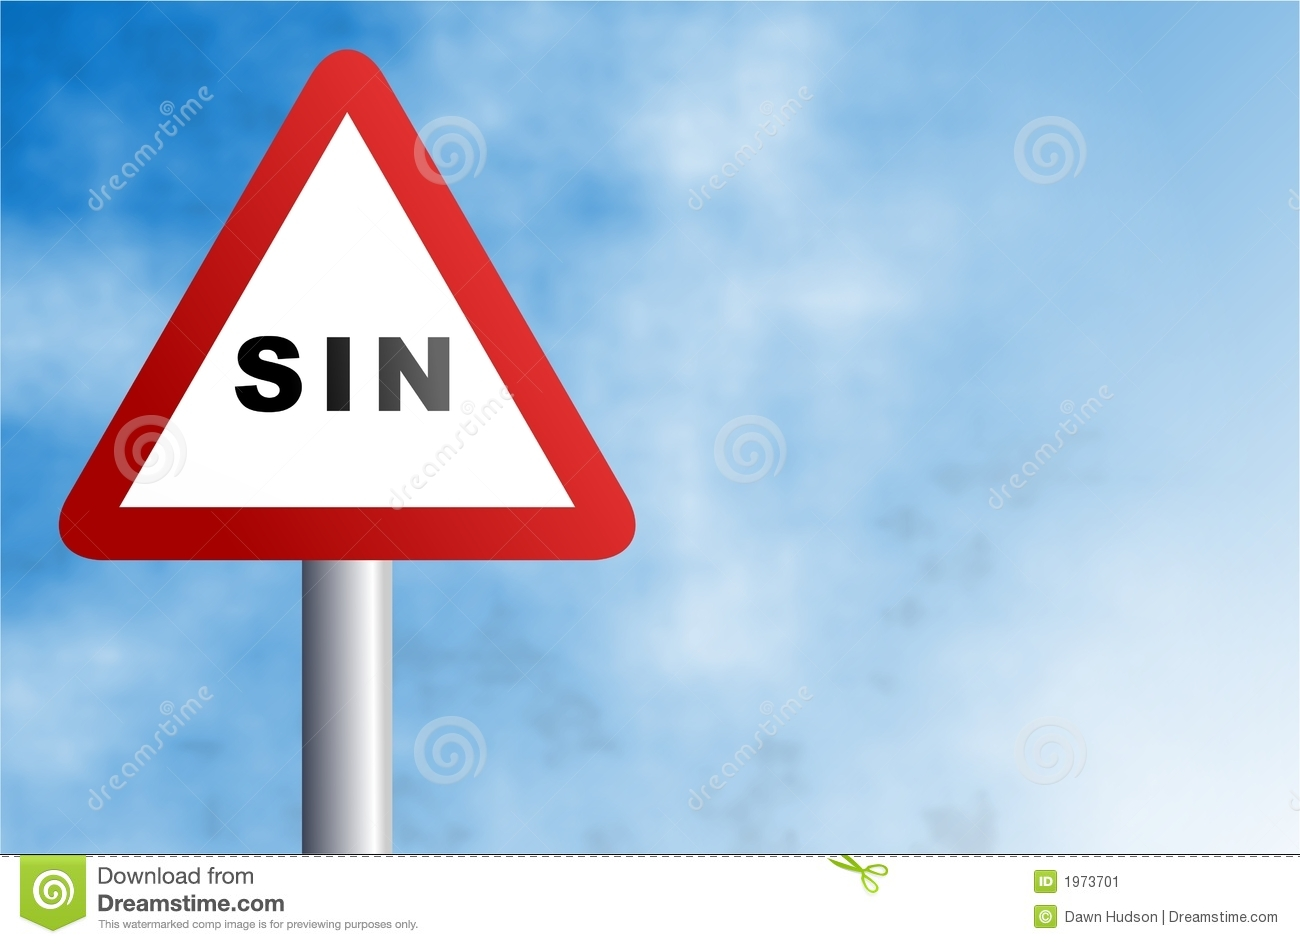 Sin Sign Stock Image  Image 1973701